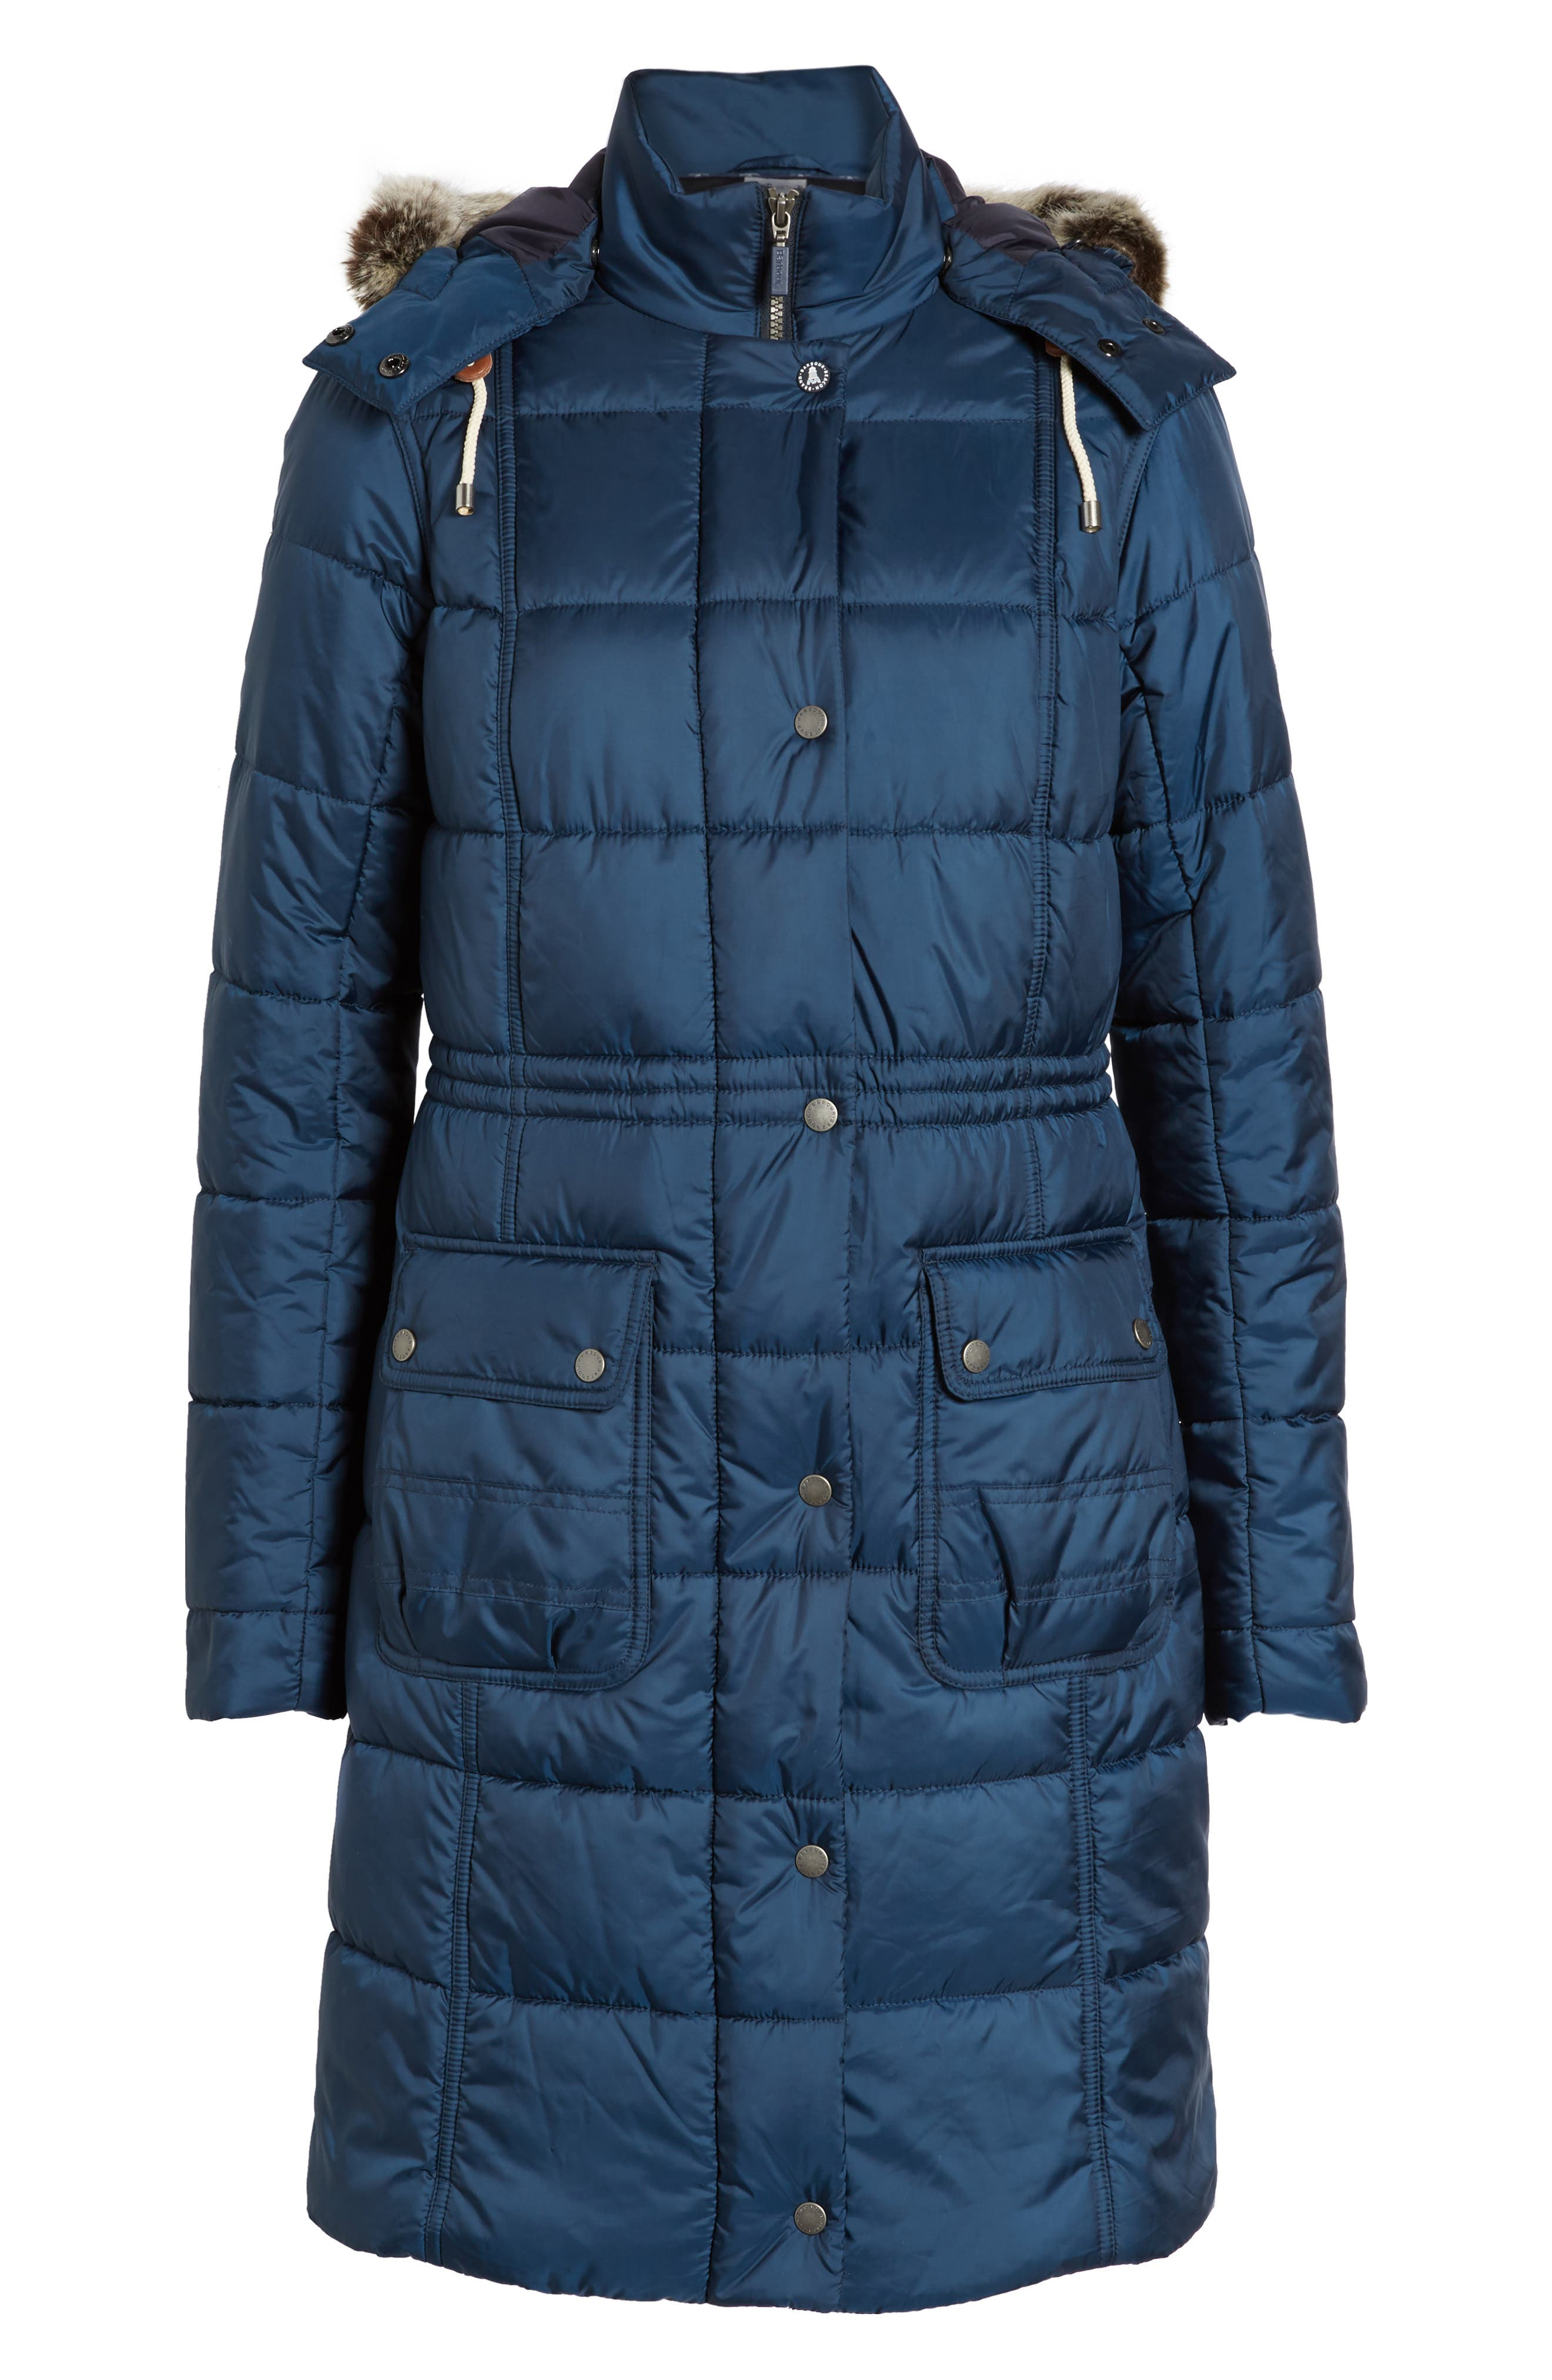 Winterton Water Resistant Hooded Quilted Jacket with Faux Fur Trim,                             Alternate thumbnail 10, color,